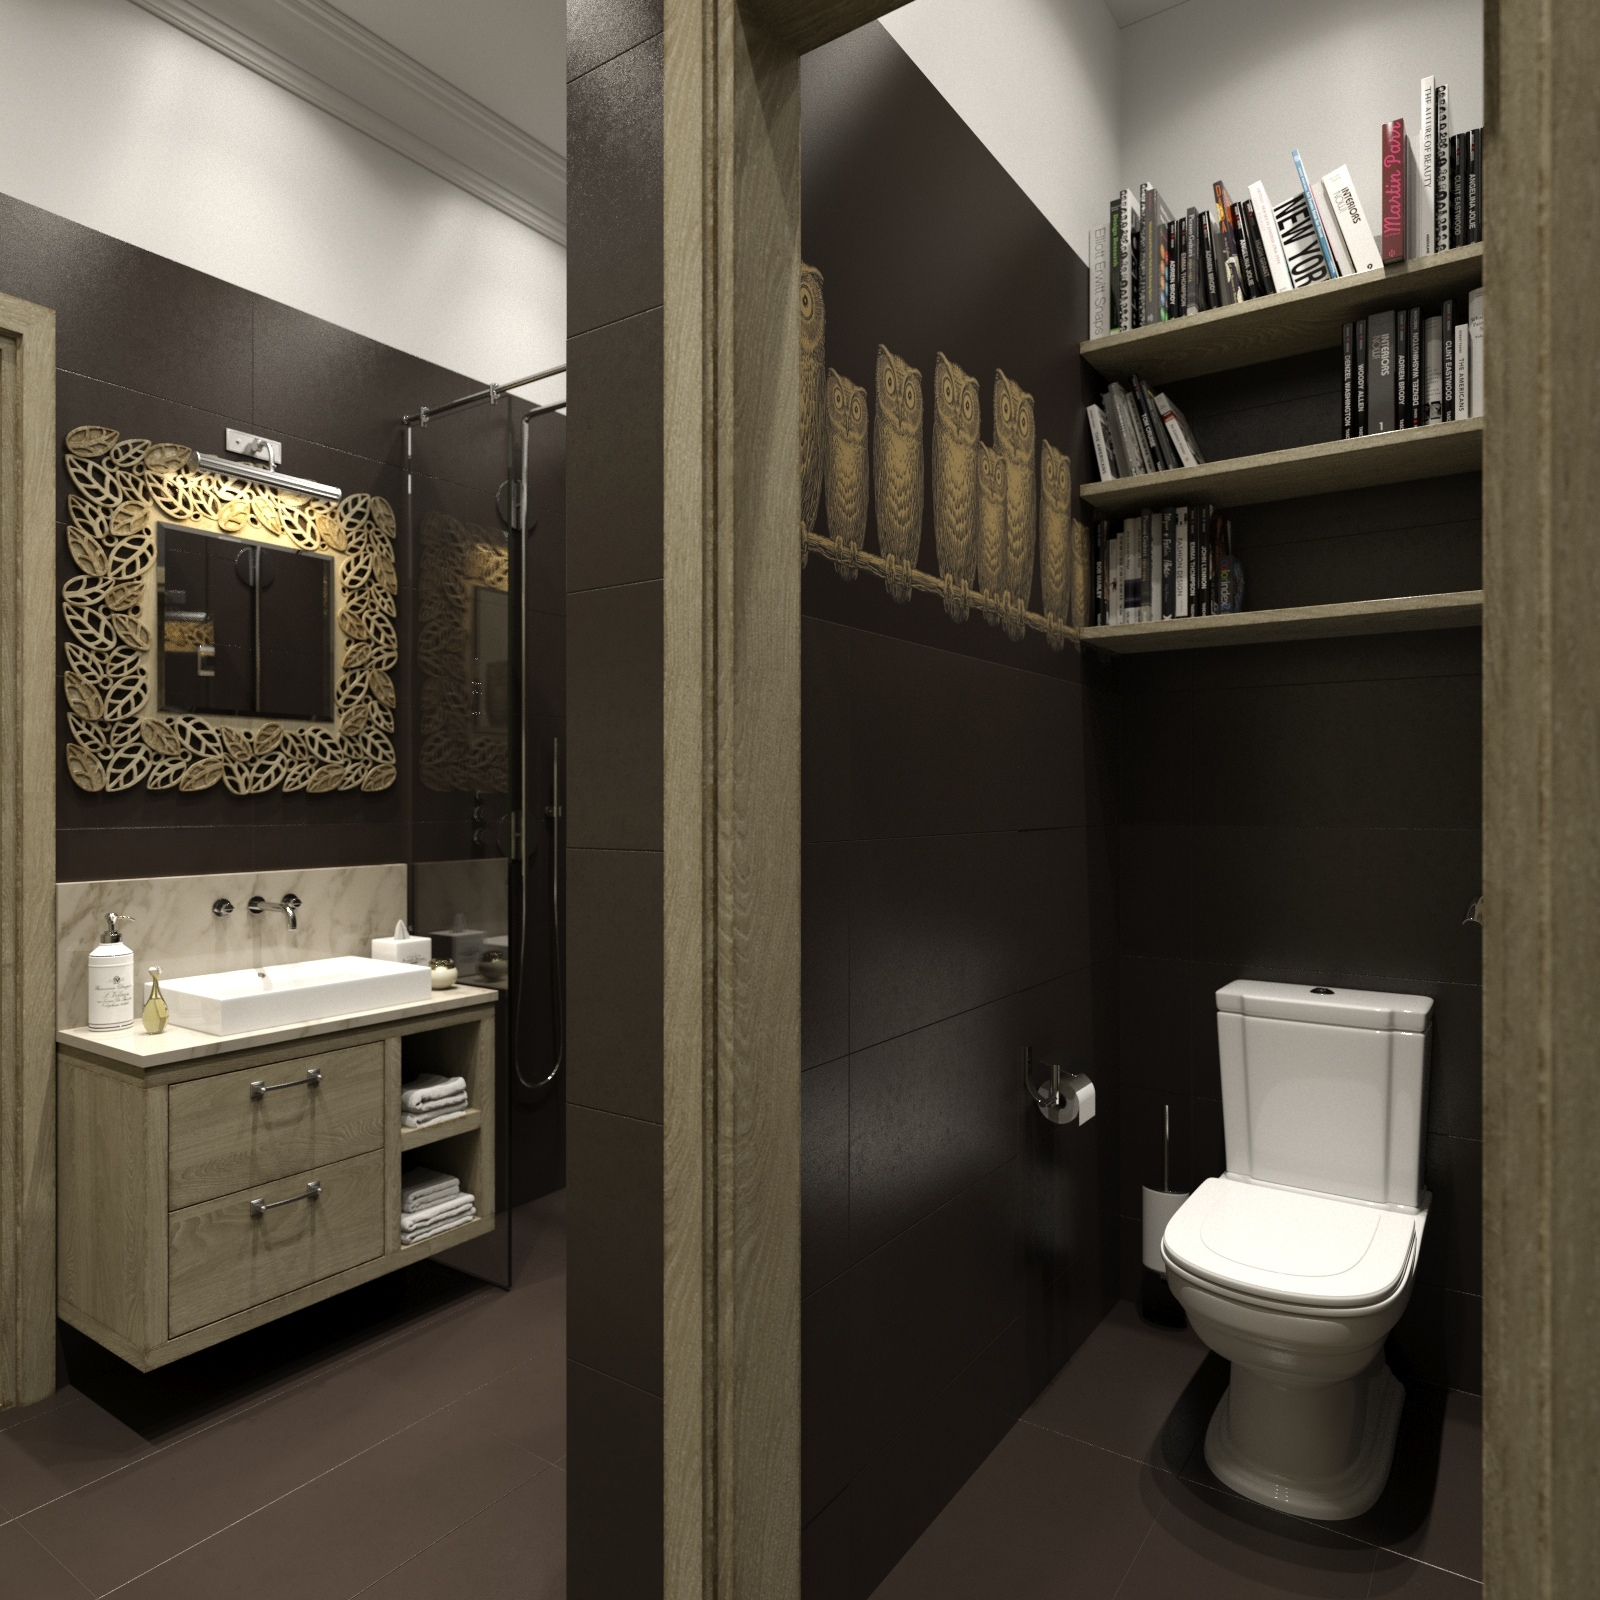 Homey feeling room designs for Small wc room design